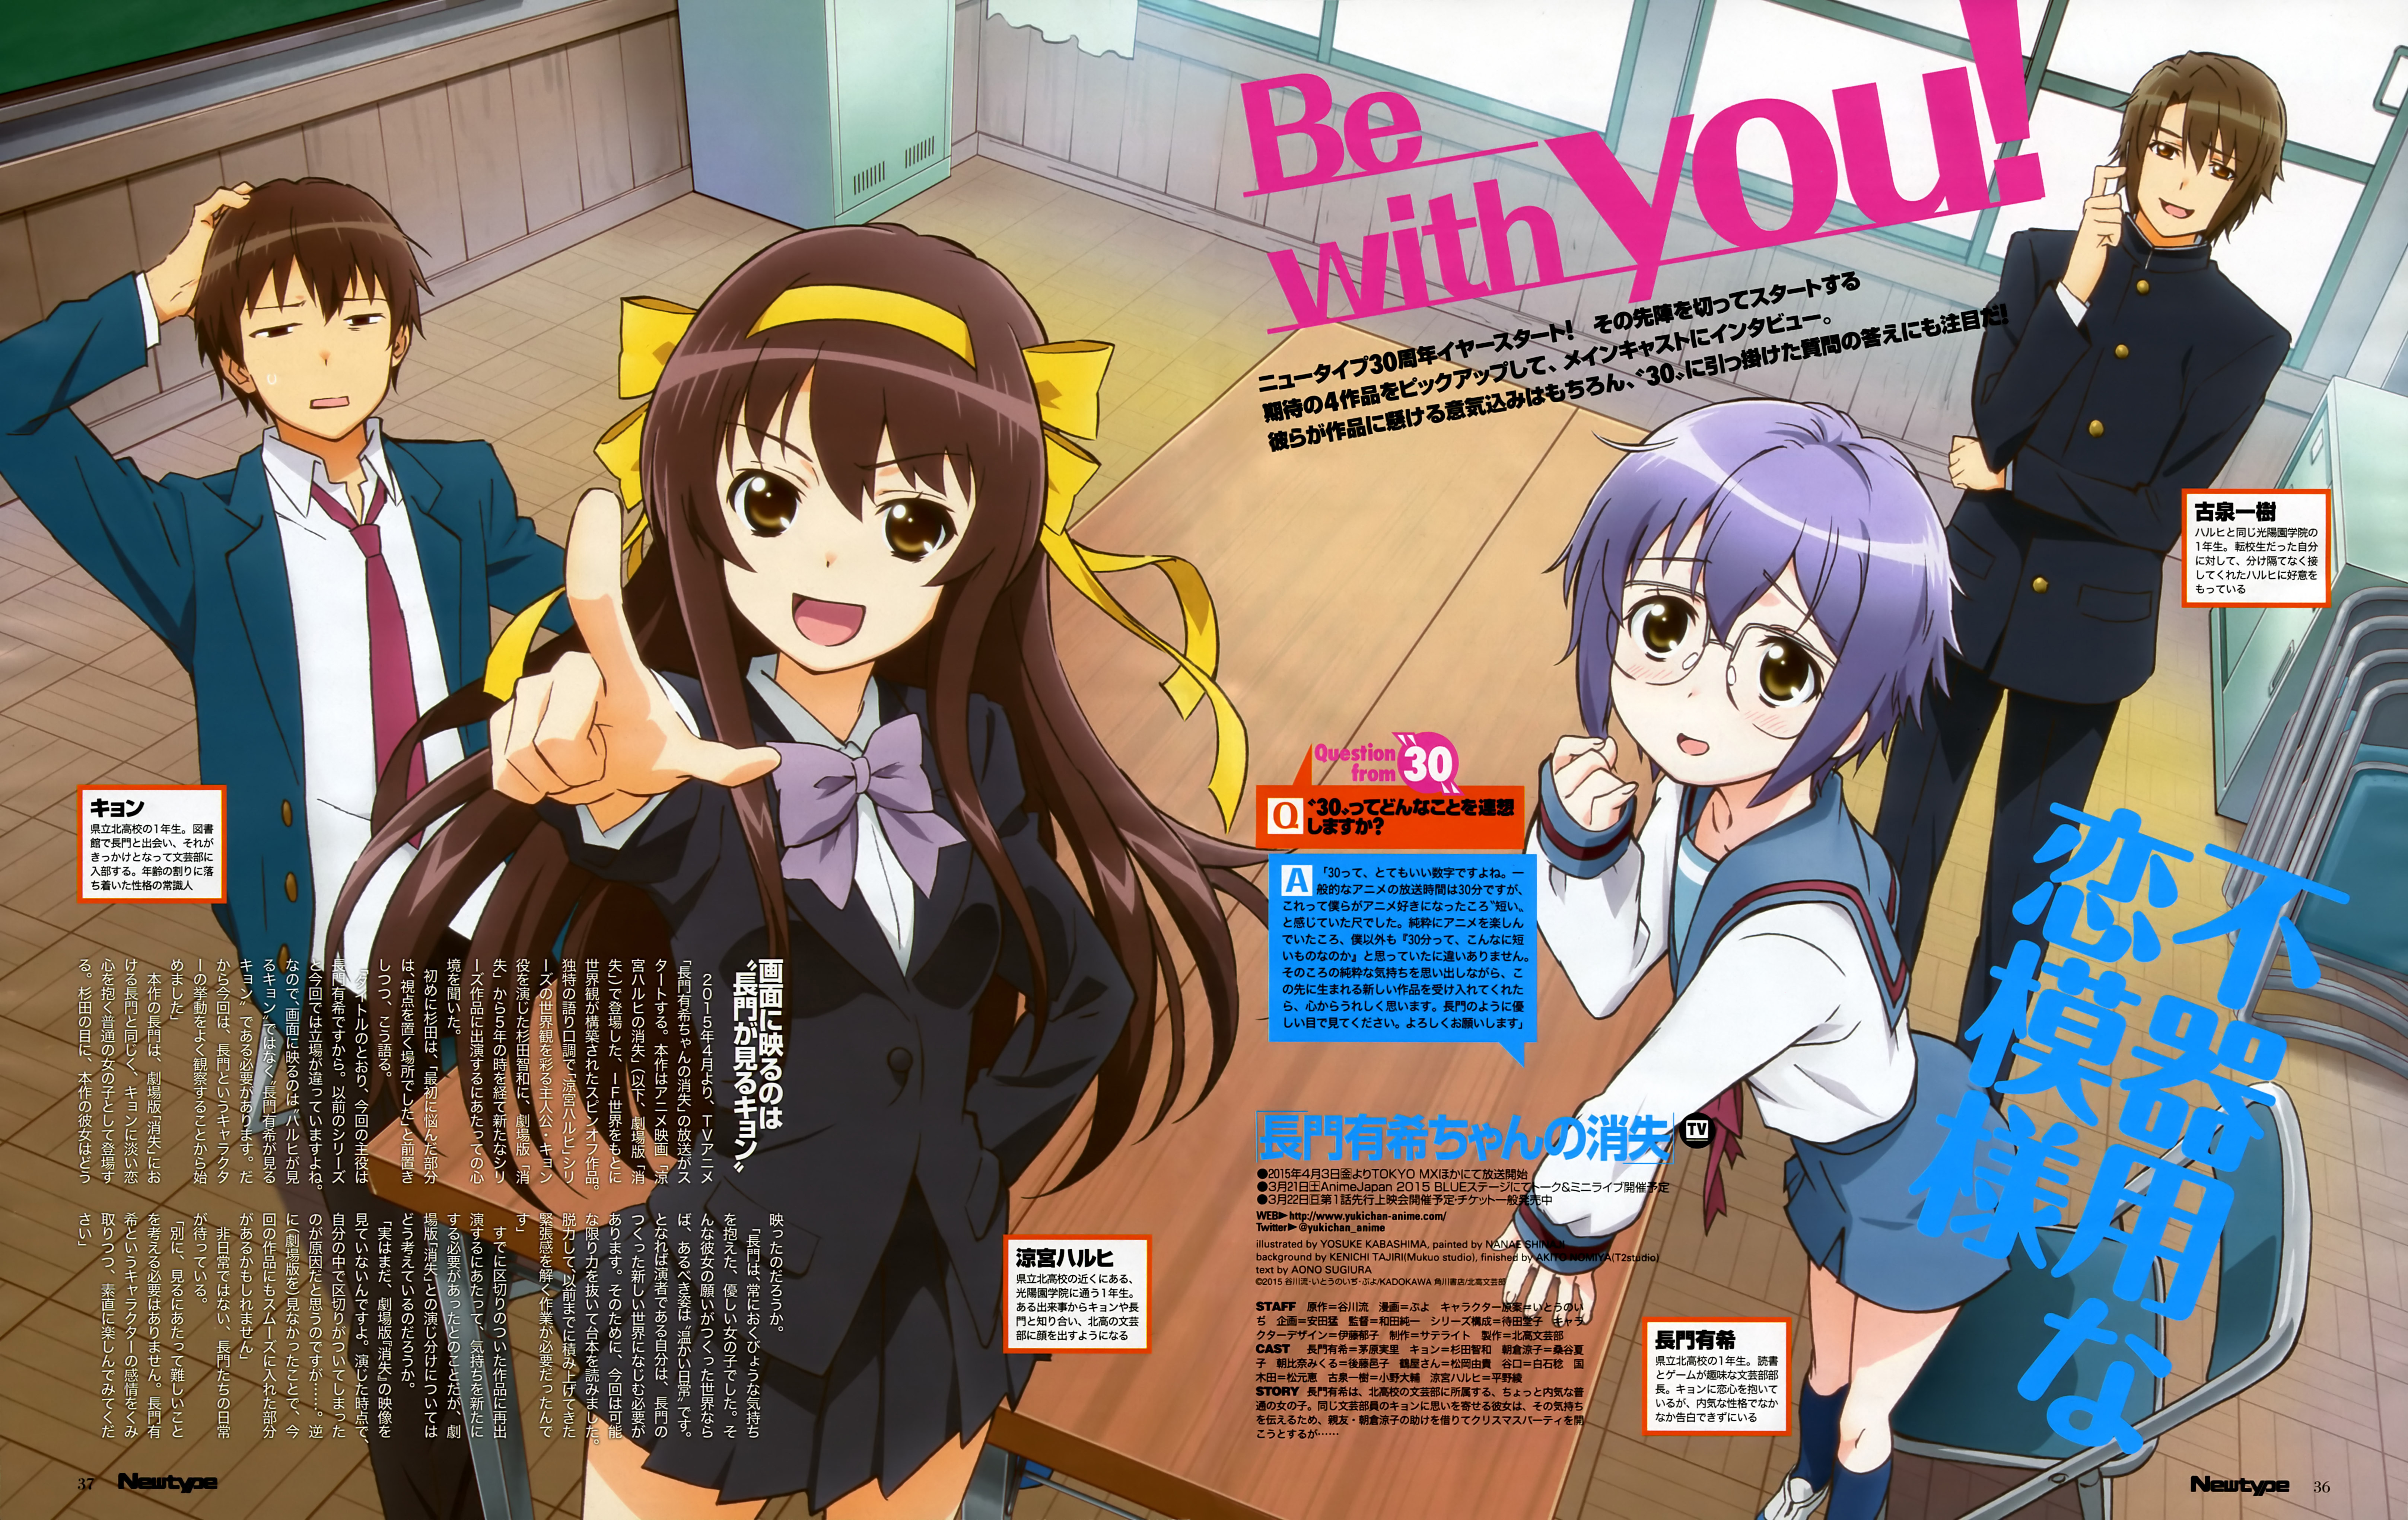 The-Disappearance-of-Nagato-Yuki-Chan-Anime-Magazine-Visual-4